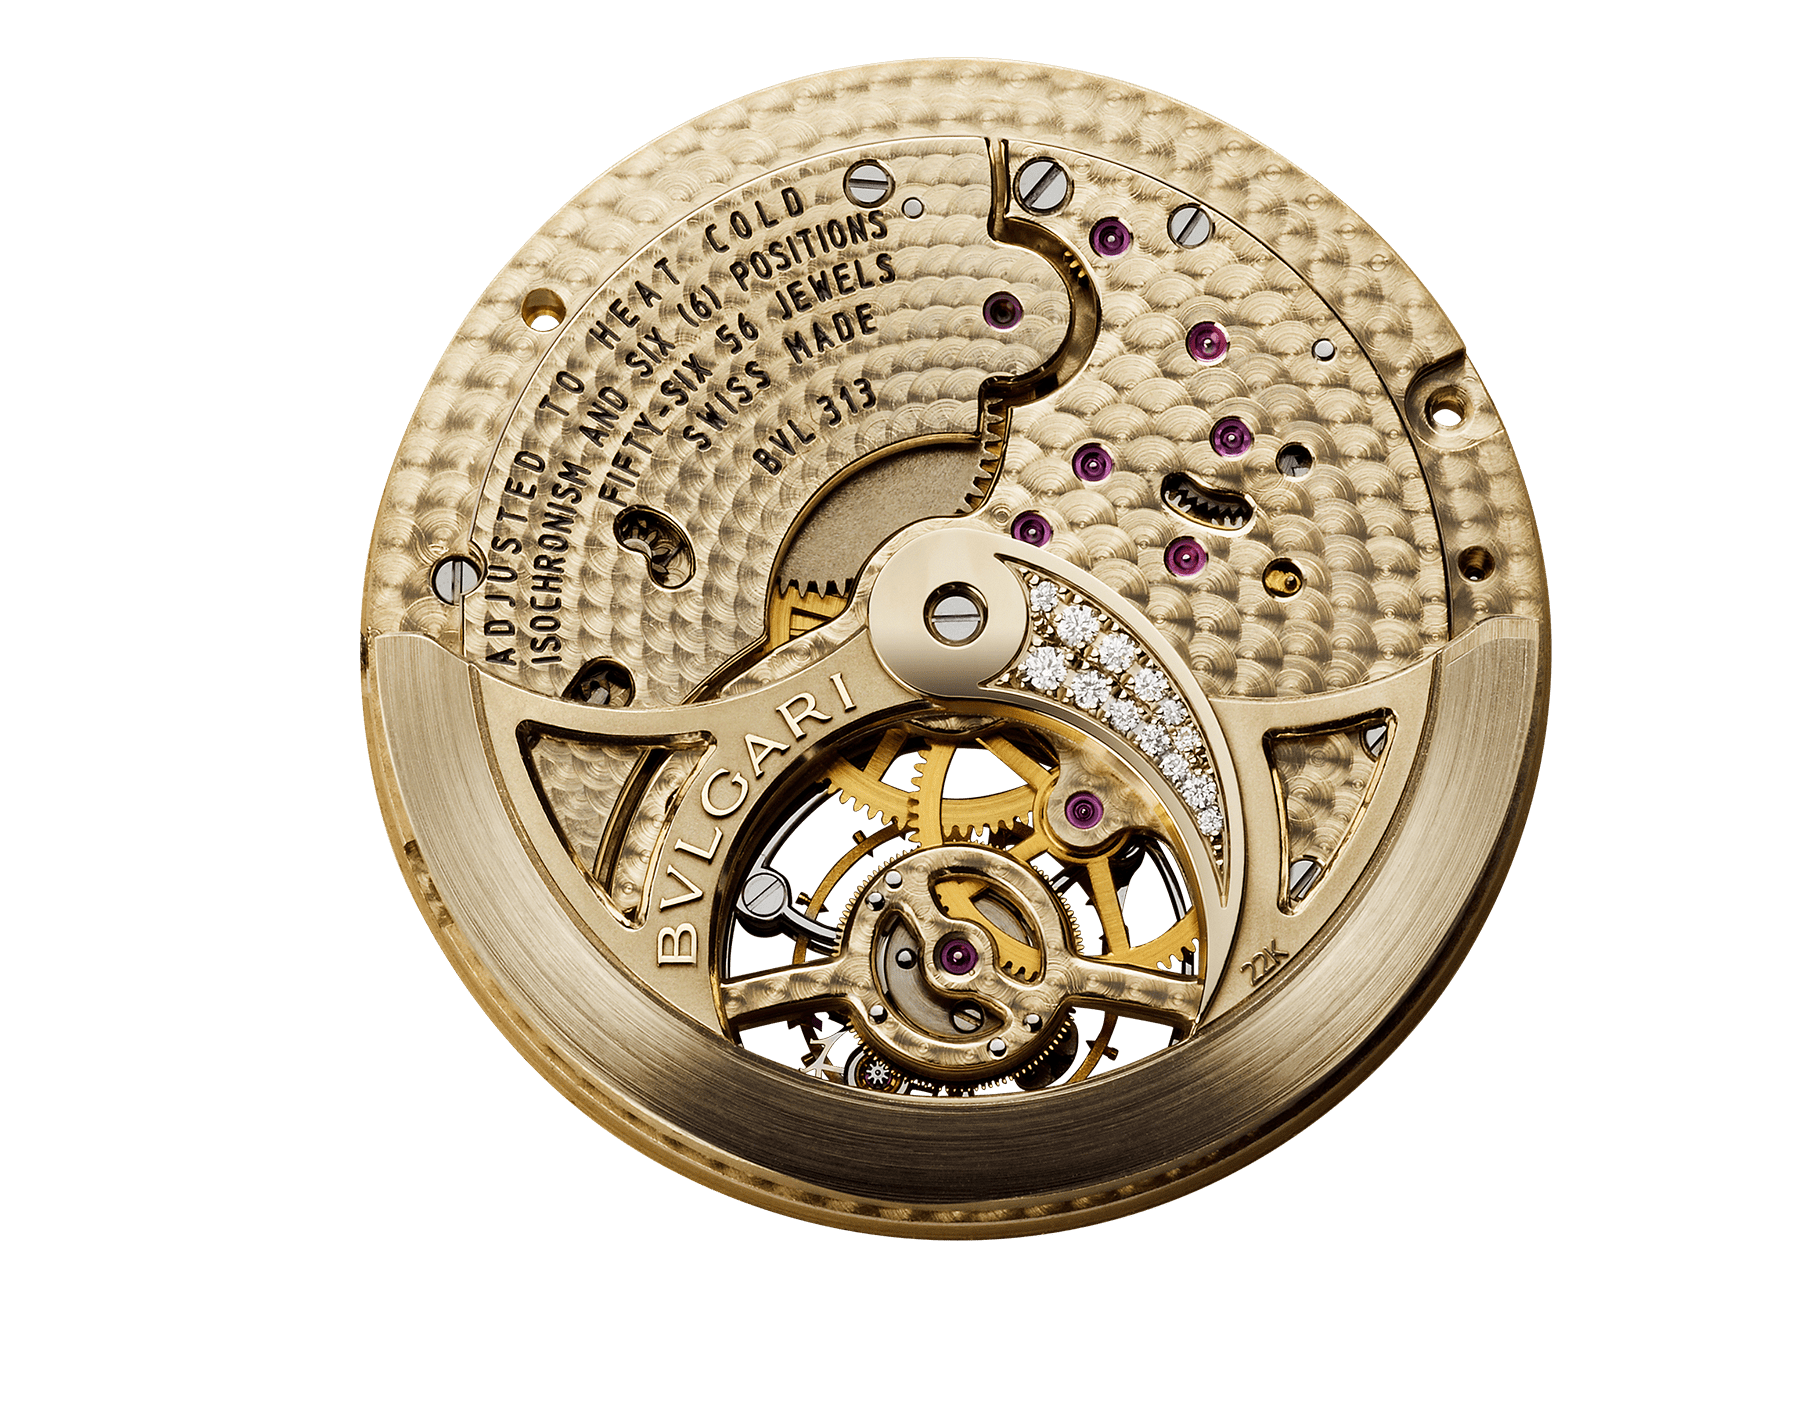 Berries Tourbillon watch with mechanical manufacture movement, automatic winding and see-through tourbillon. 18 kt rose gold case set with brilliant-cut diamonds, emeralds, mandarine garnets, tourmaline, sapphire and tsavorite, aventurine dial, diamond indexes and blue alligator bracelet 102556 image 2